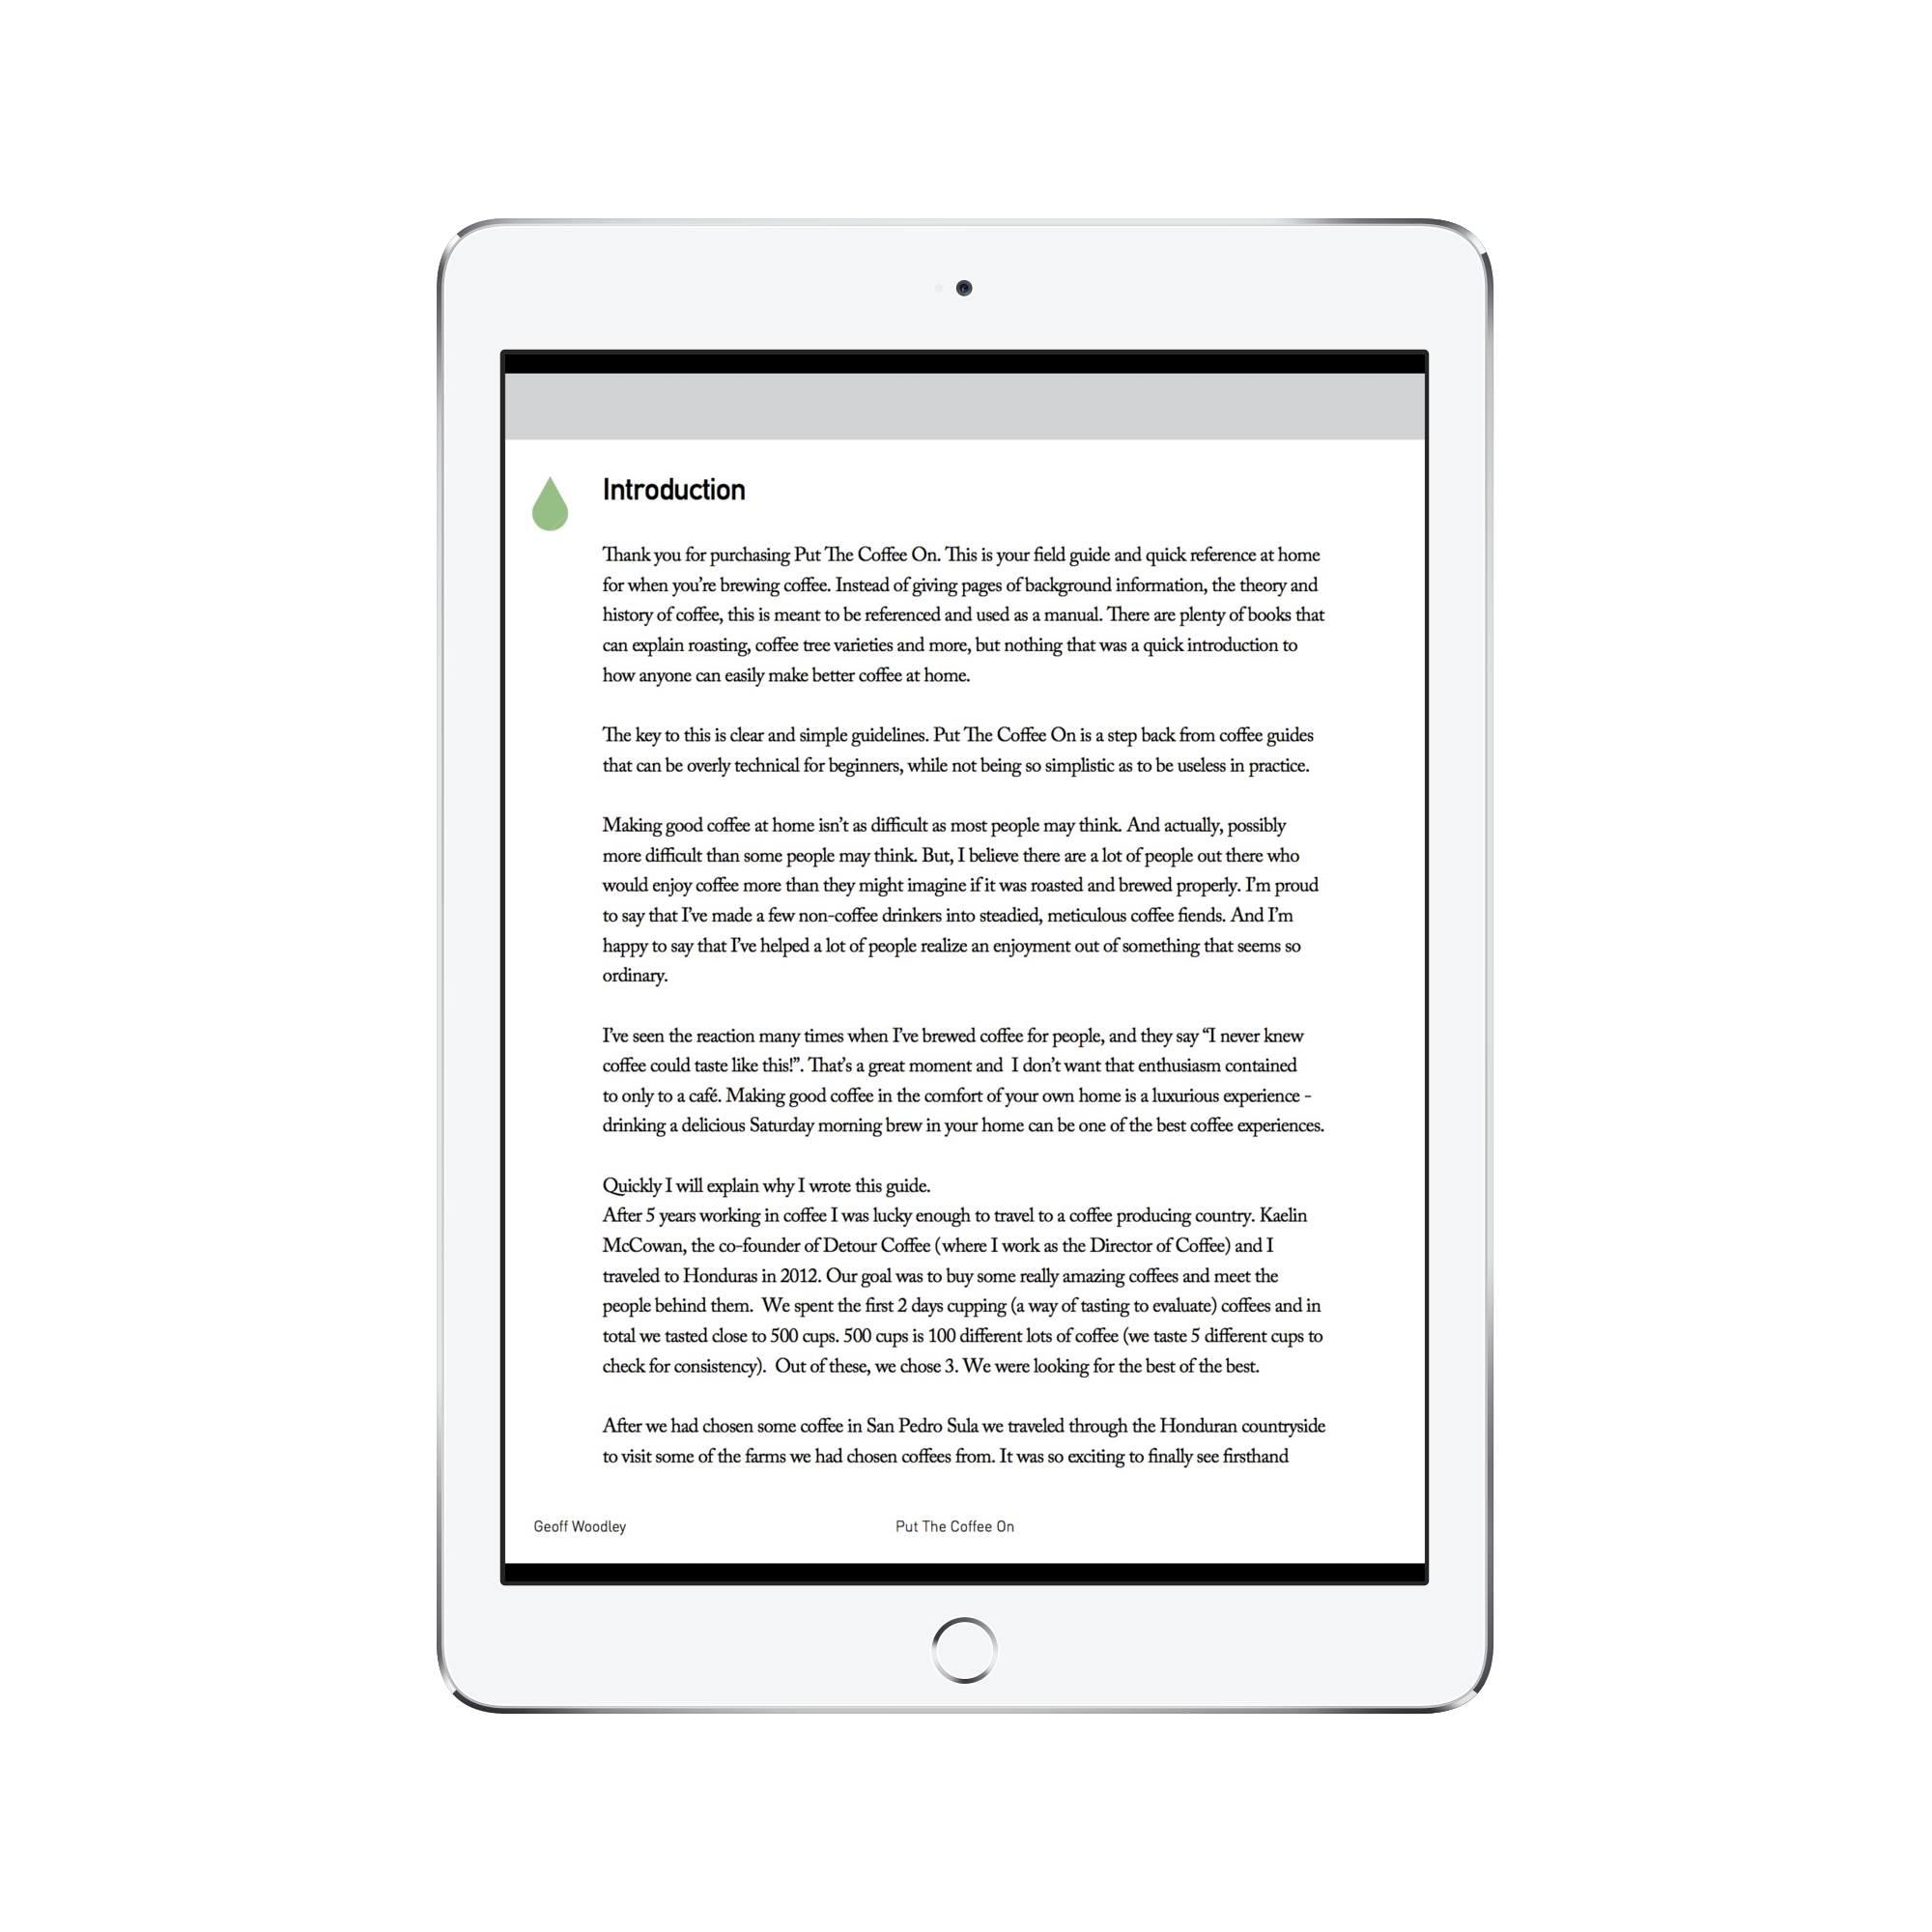 ipadair2_silver_portrait-intro.png